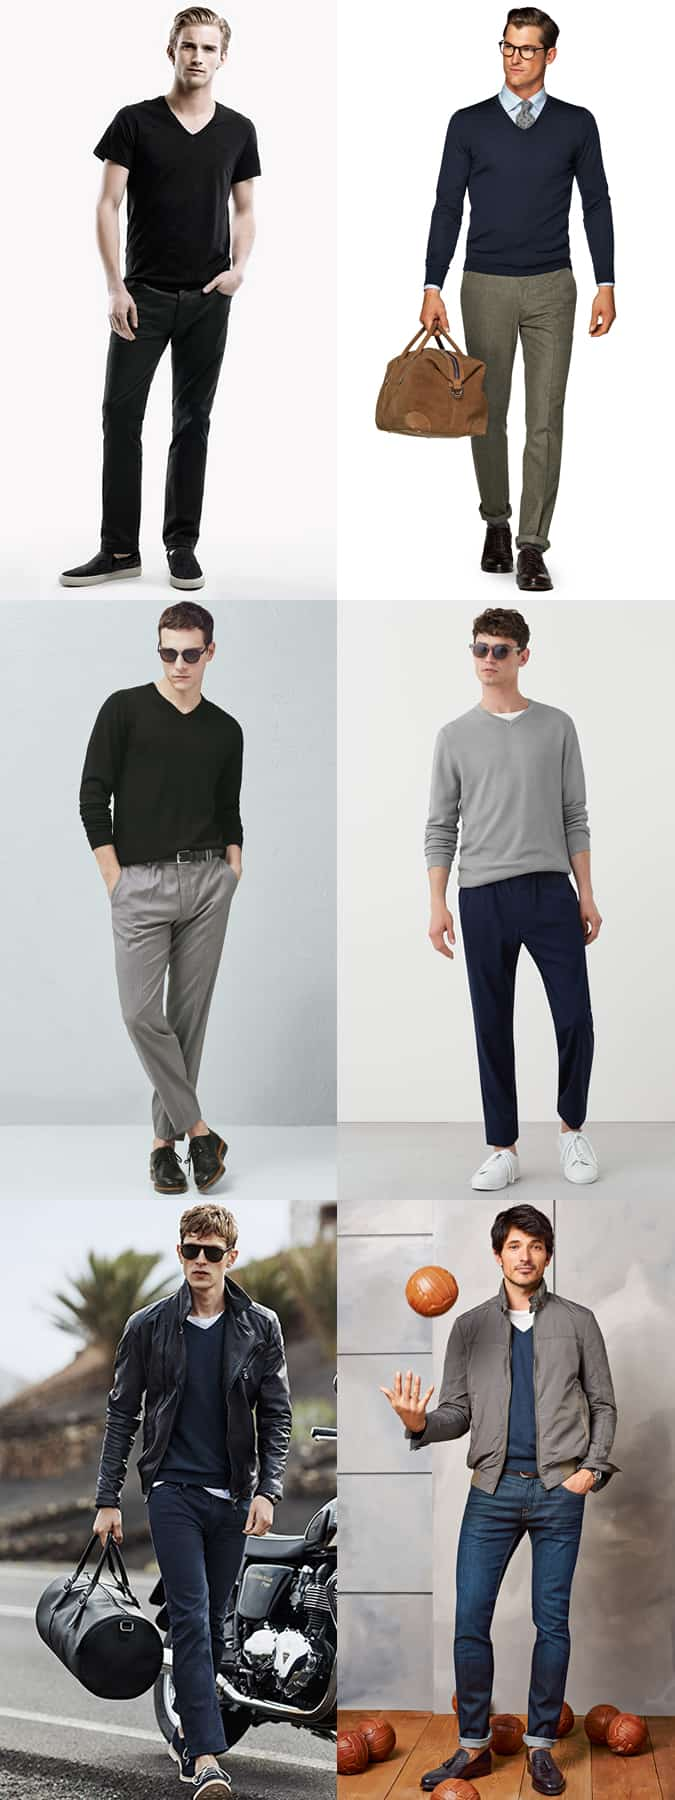 Men's V-Neck Jumpers and T-Shirts Outfit Inspiration Lookbook